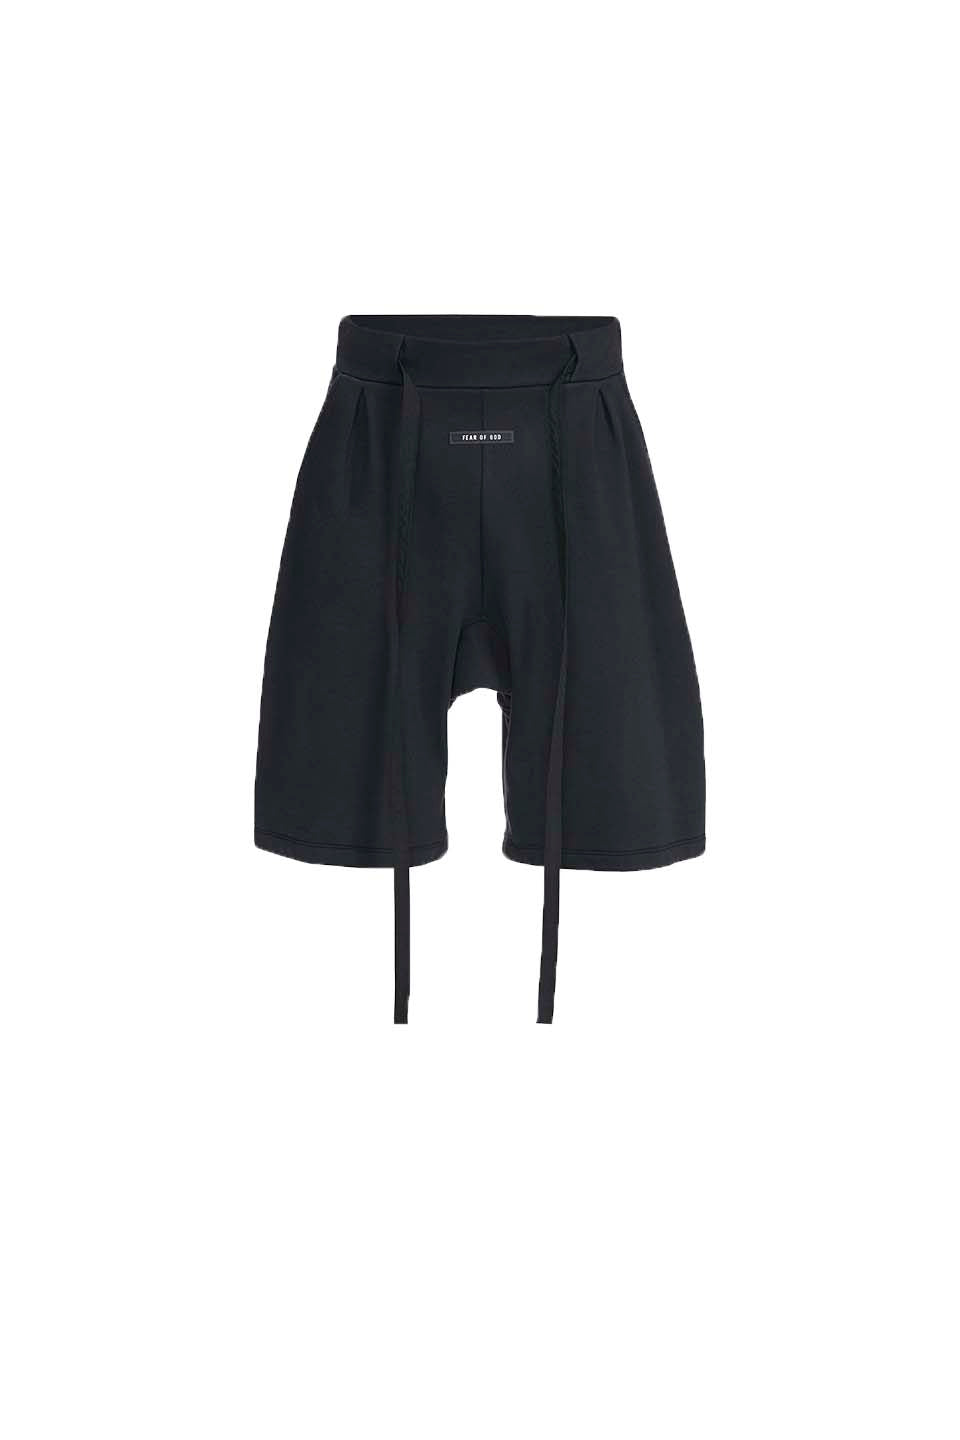 FEAR OF GOD ESSENTIALS DRAWSTRING SHORTS